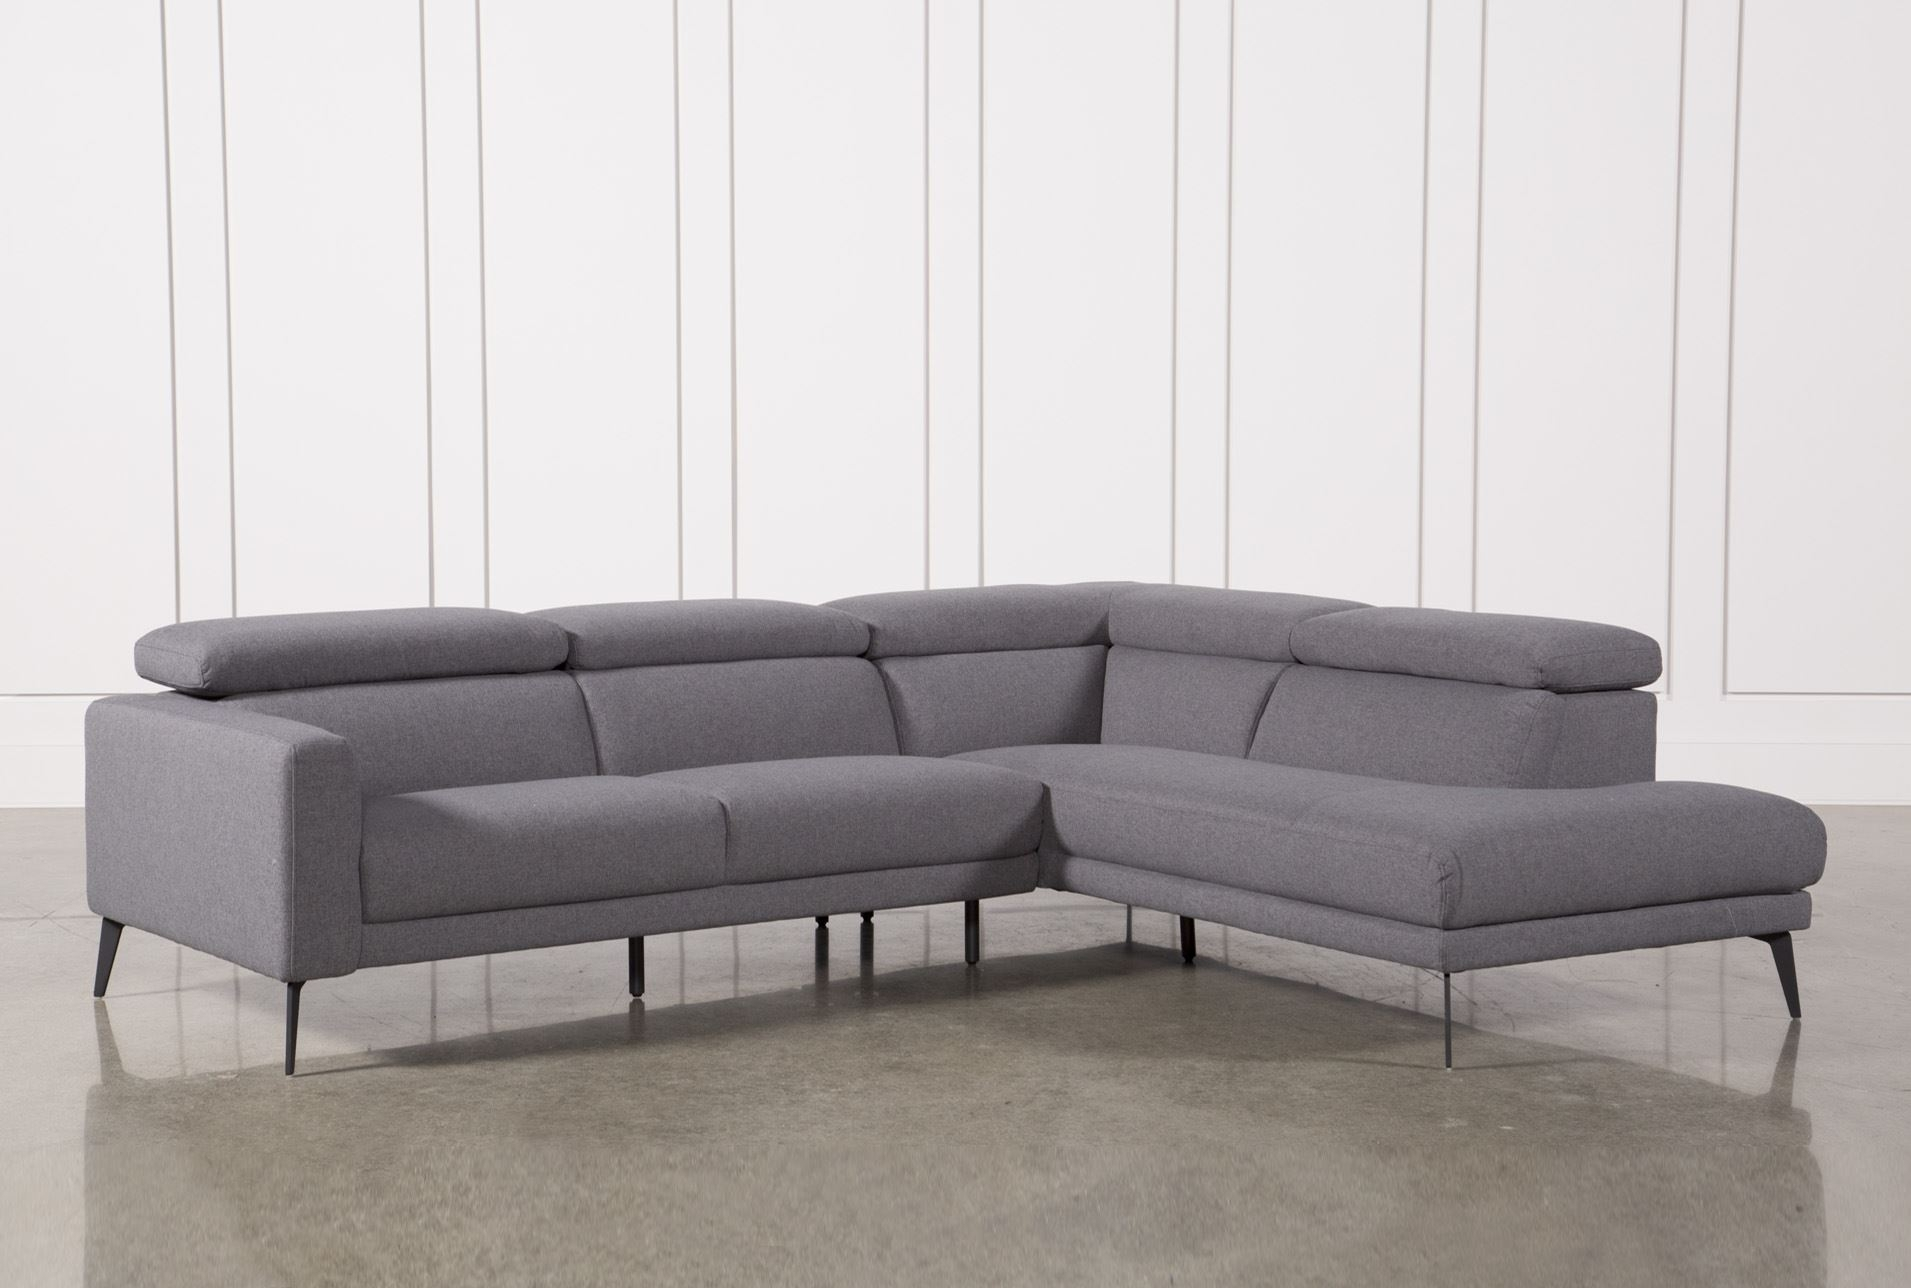 Awesome Collection Of Raf Chaise On Neo Grey 2 Piece Sectional W Raf With Norfolk Grey 3 Piece Sectionals With Laf Chaise (Image 1 of 25)